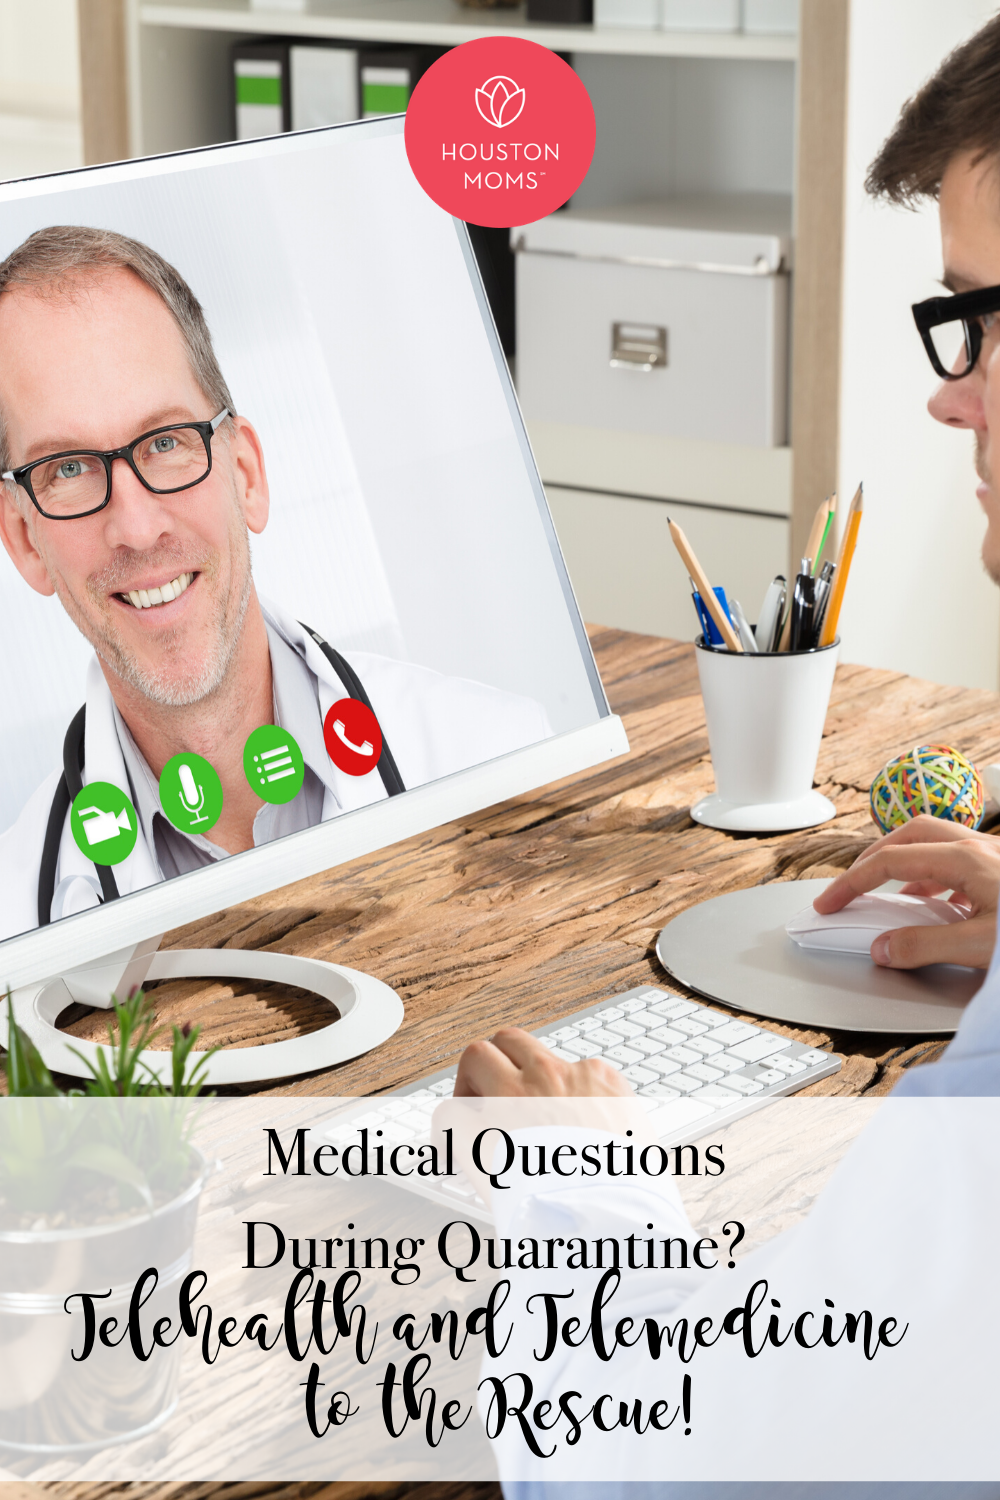 "Houston Moms ""Medical Questions During Quarantine? Telehealth and Telemedicine to the Rescue!"" #houstonmoms #houstonmomsblog #momsaroundhouston"